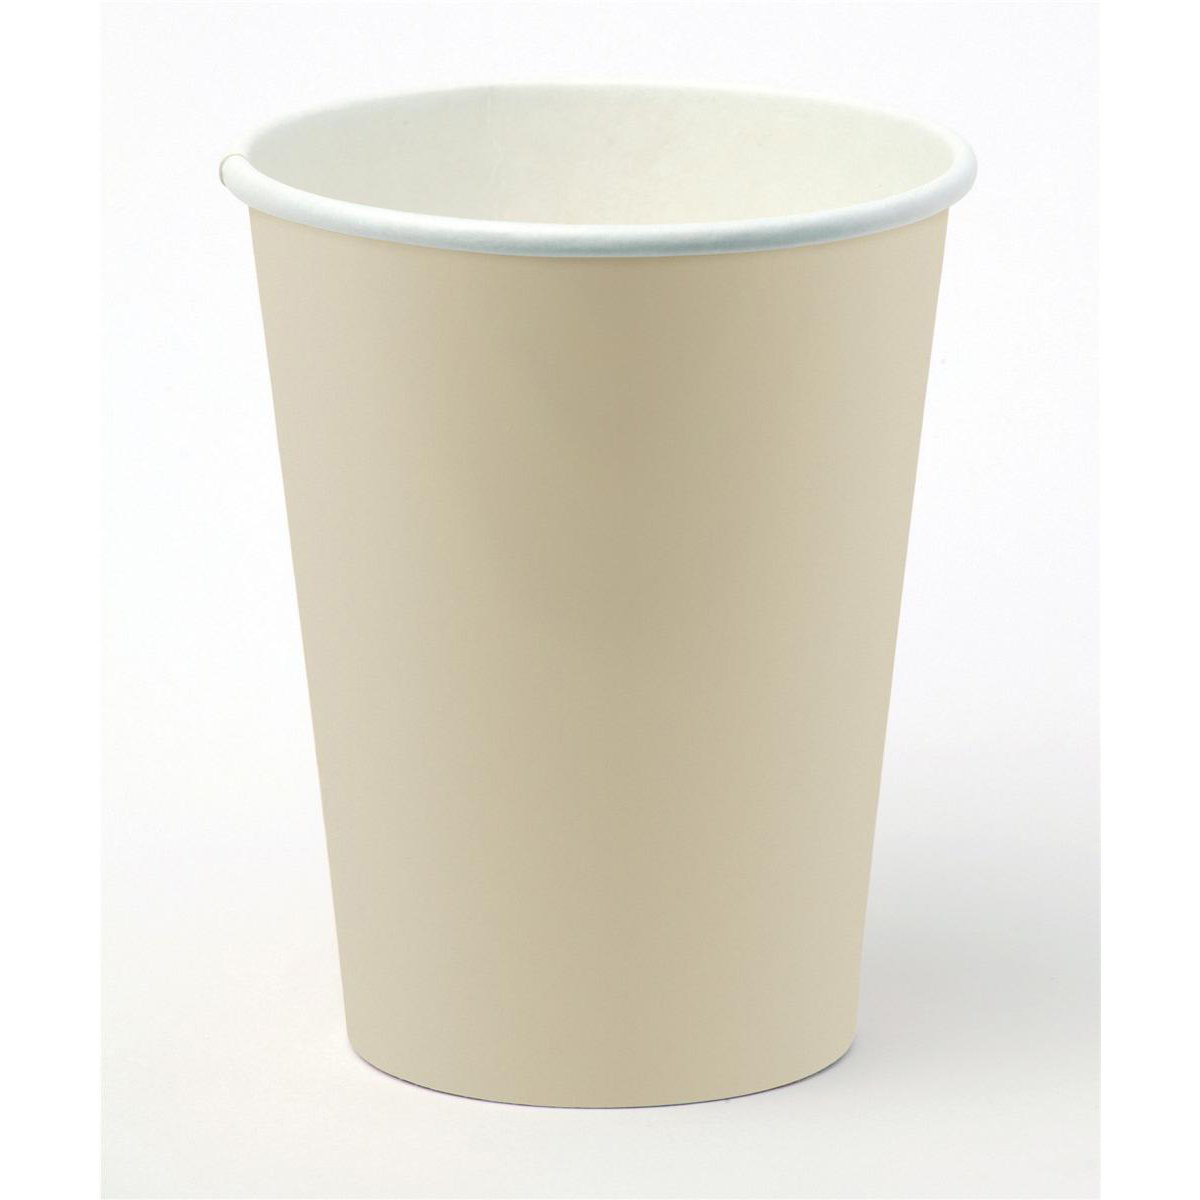 Disposable Cups & Accessories Paper Cup for Hot Drinks 12oz 340ml Varied Design Ref 01157 Pack 50